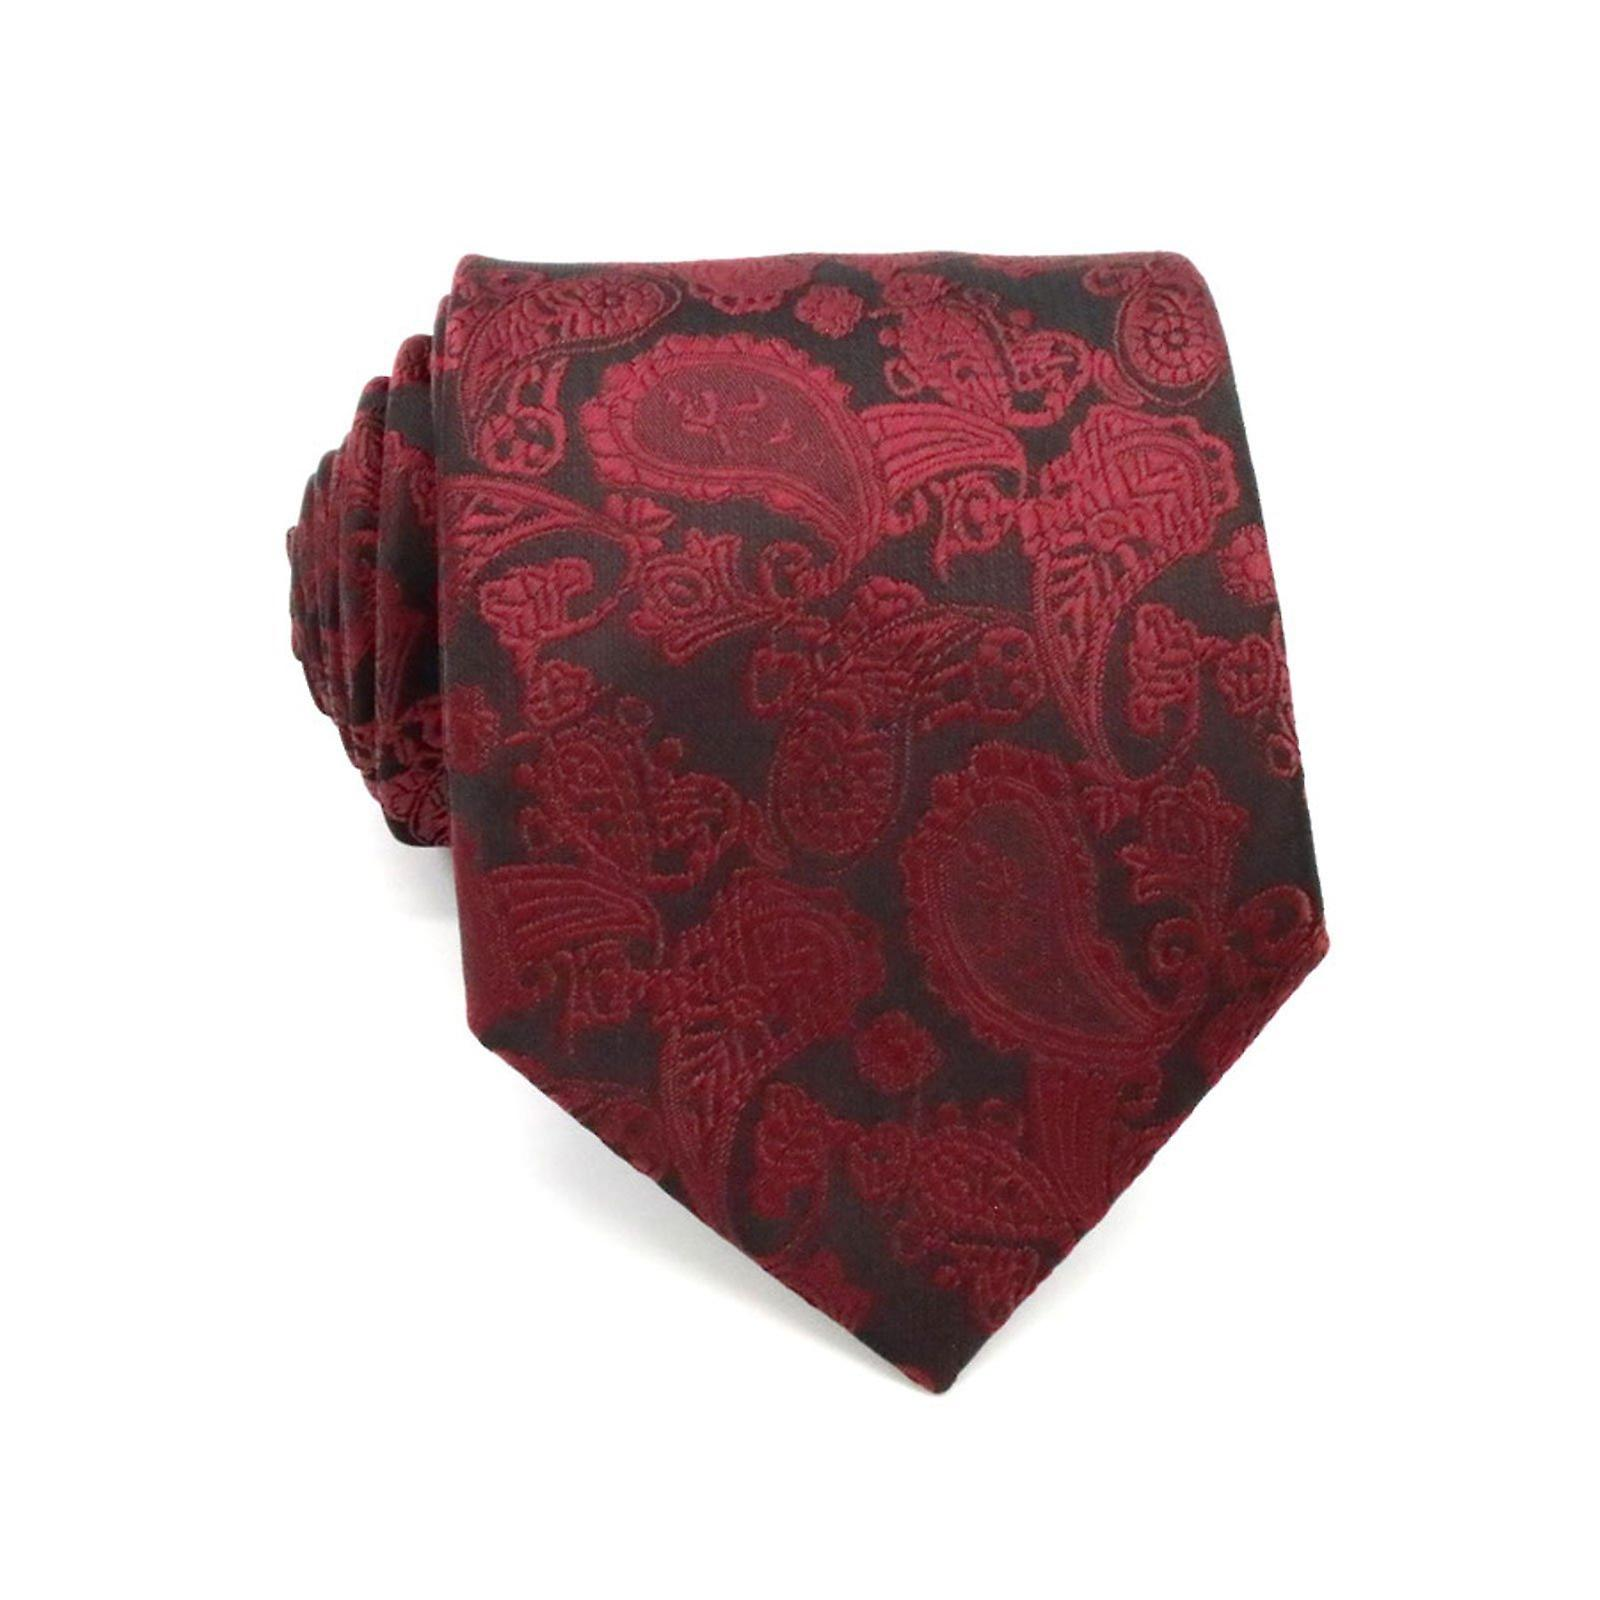 Red wine wedding party event pocket square & tie set